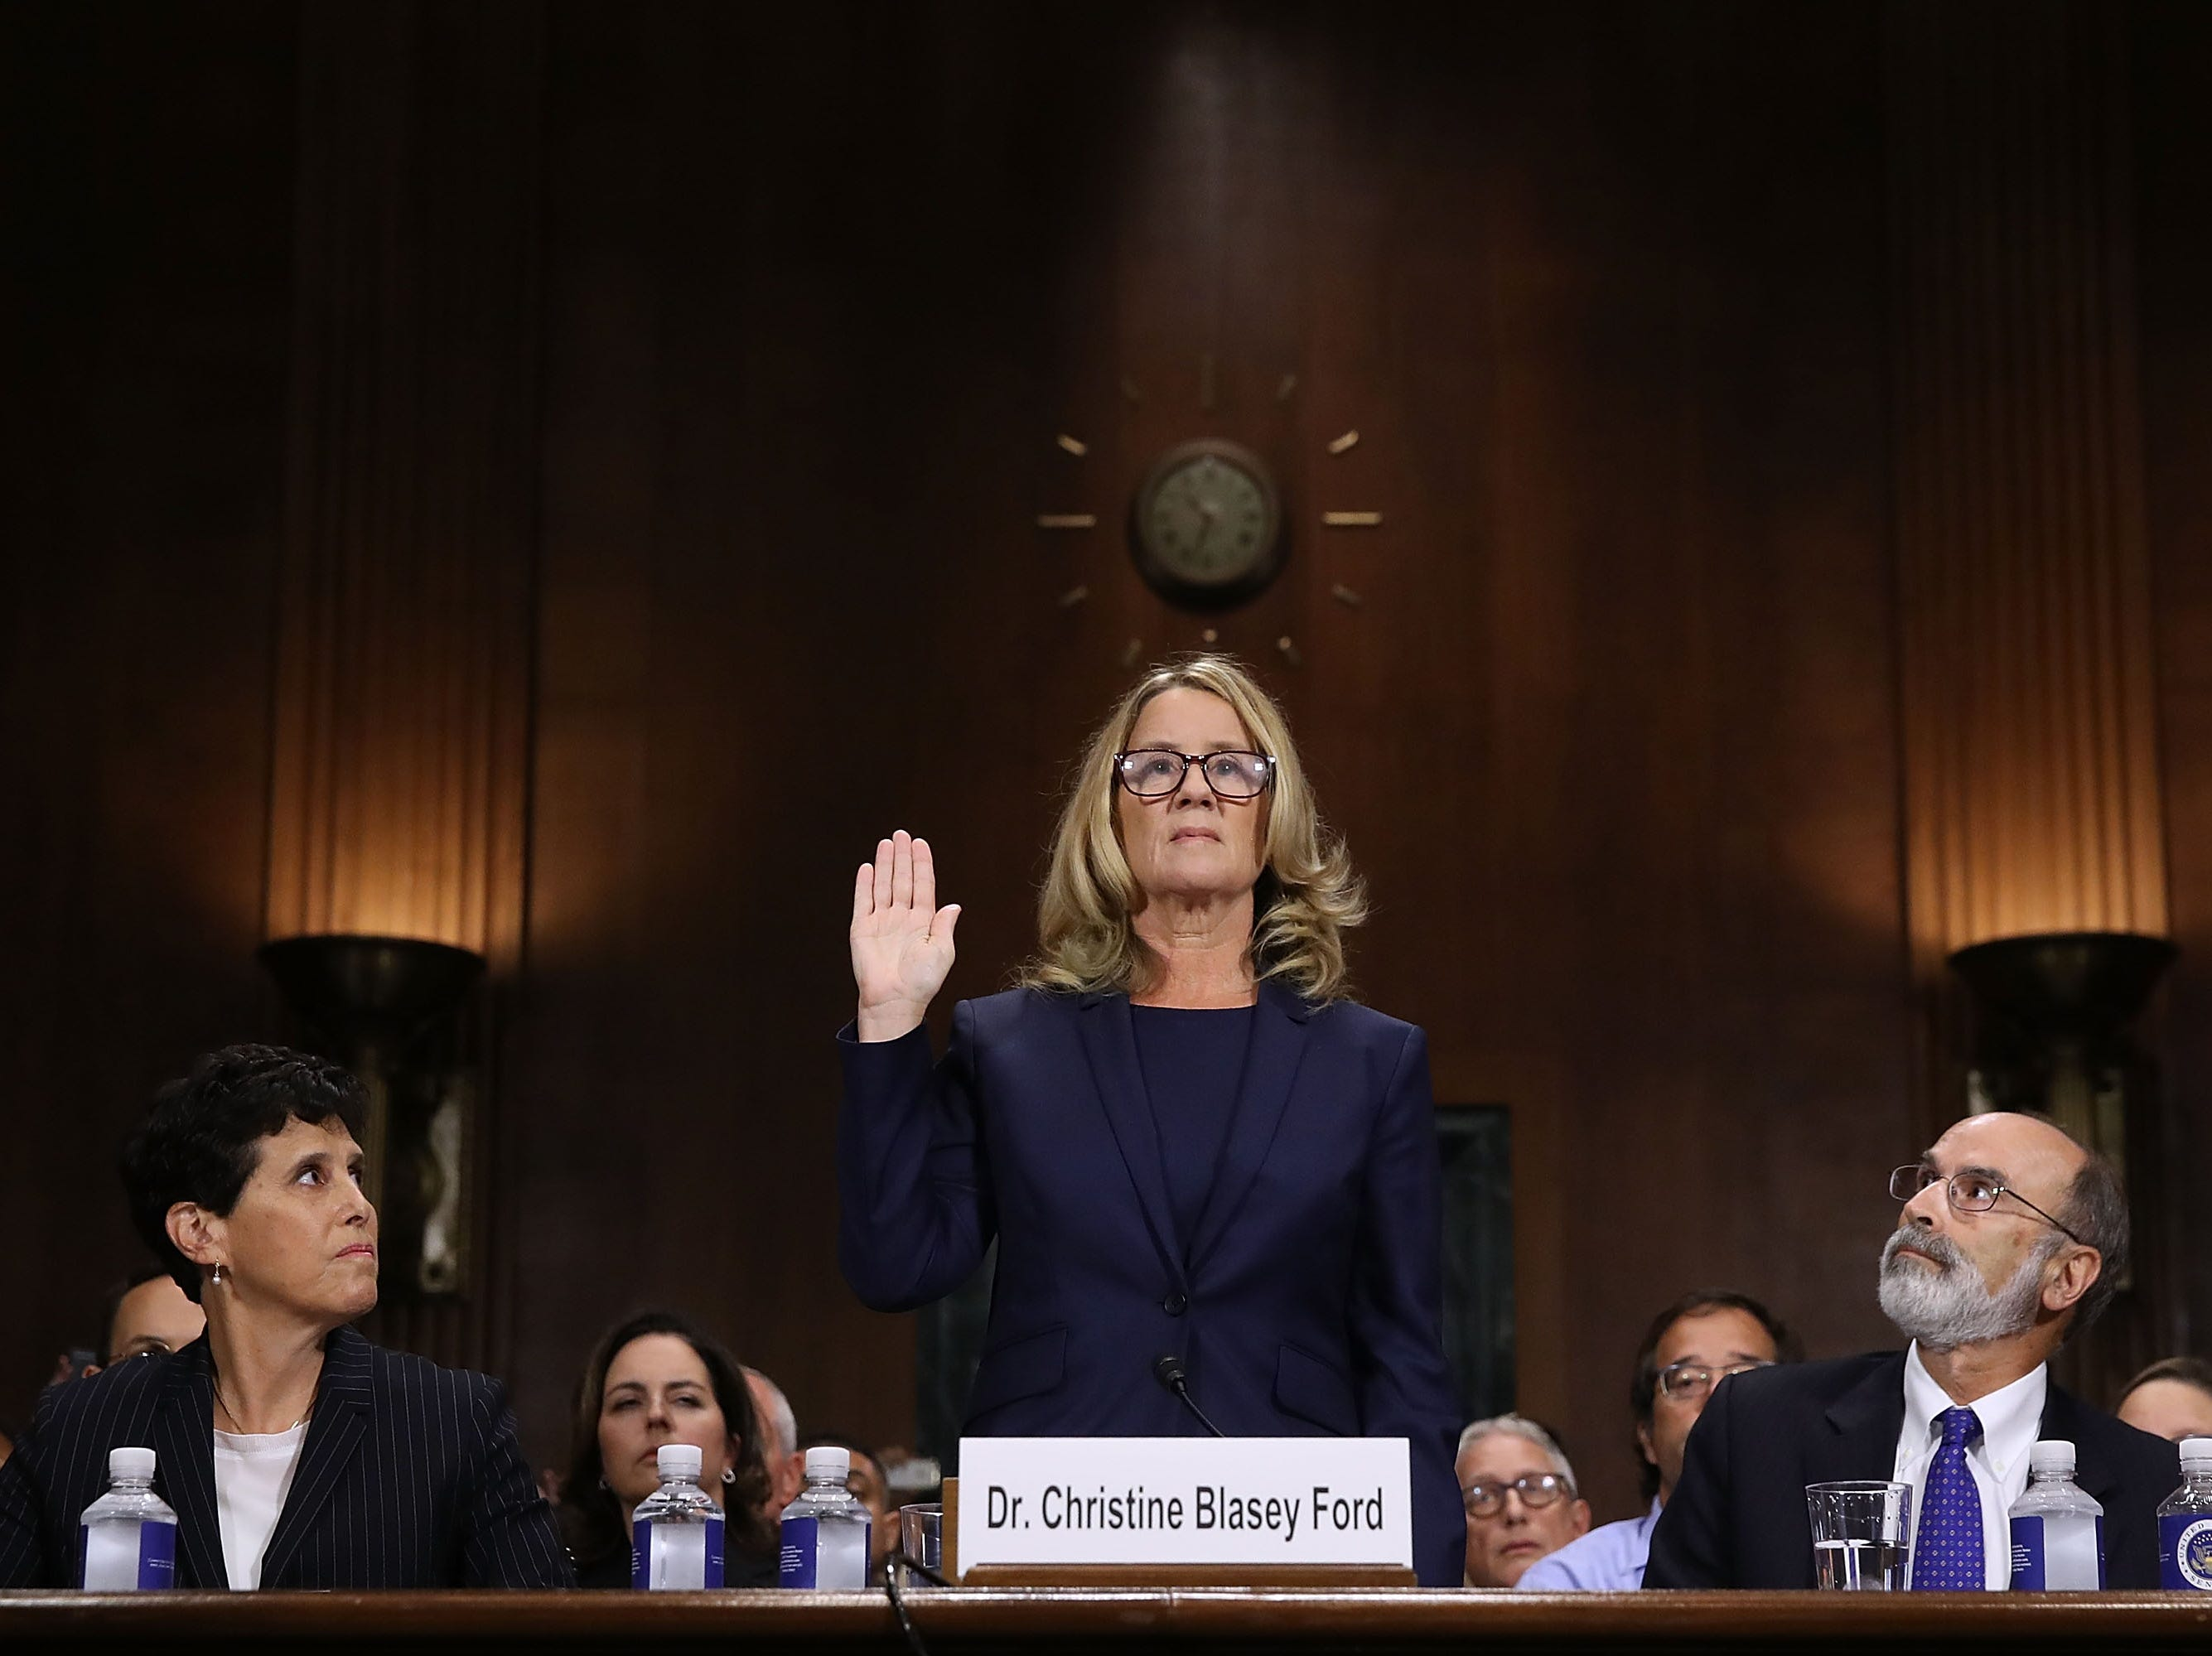 Christine Blasey Ford (C) is sworn in before testifying the Senate Judiciary Committee with her attorneys Debra Katz (L) and Michael Bromwich (R) on Capitol Hill Sept. 27, 2018 in Washington, DC. A professor at Palo Alto University and a research psychologist at the Stanford University School of Medicine, Ford has accused Supreme Court nominee Judge Brett Kavanaugh of sexually assaulting her during a party in 1982 when they were high school students in suburban Maryland. In prepared remarks, Ford said, ÒI donÕt have all the answers, and I donÕt remember as much as I would like to. But the details about that night that bring me here today are ones I will never forget. They have been seared into my memory and have haunted me episodically as an adult.Ó